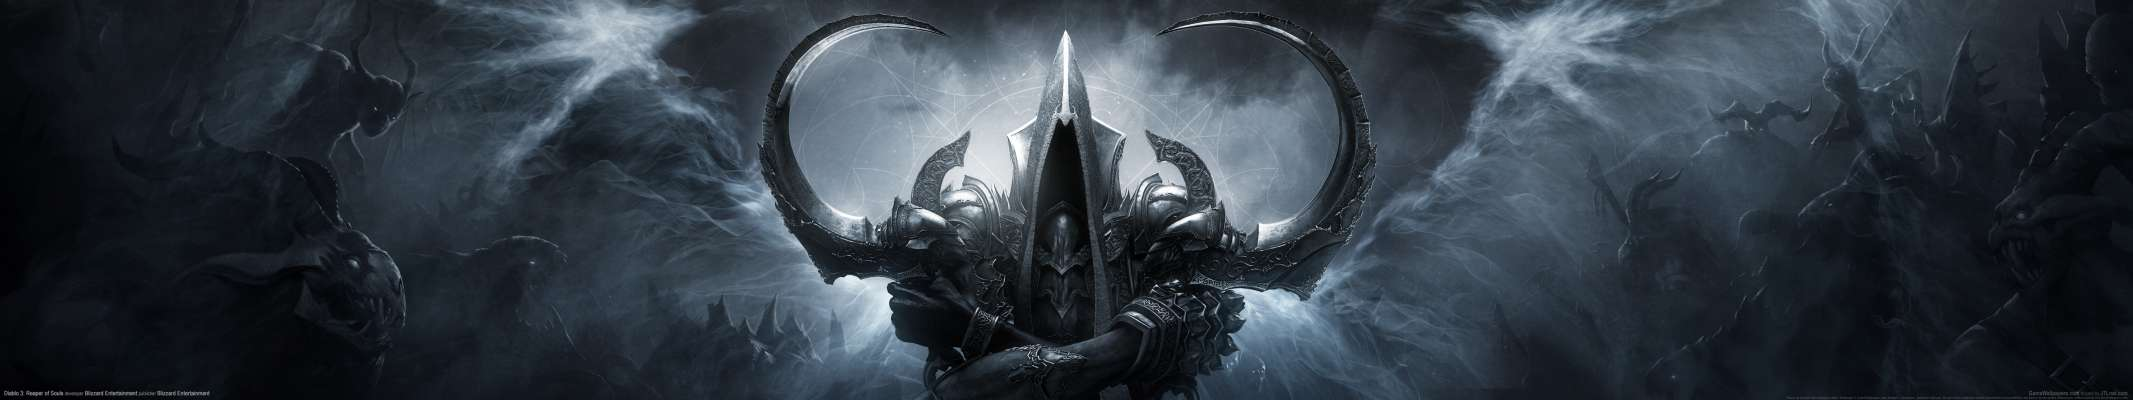 Diablo 3: Reaper of Souls triple screen fond d'écran